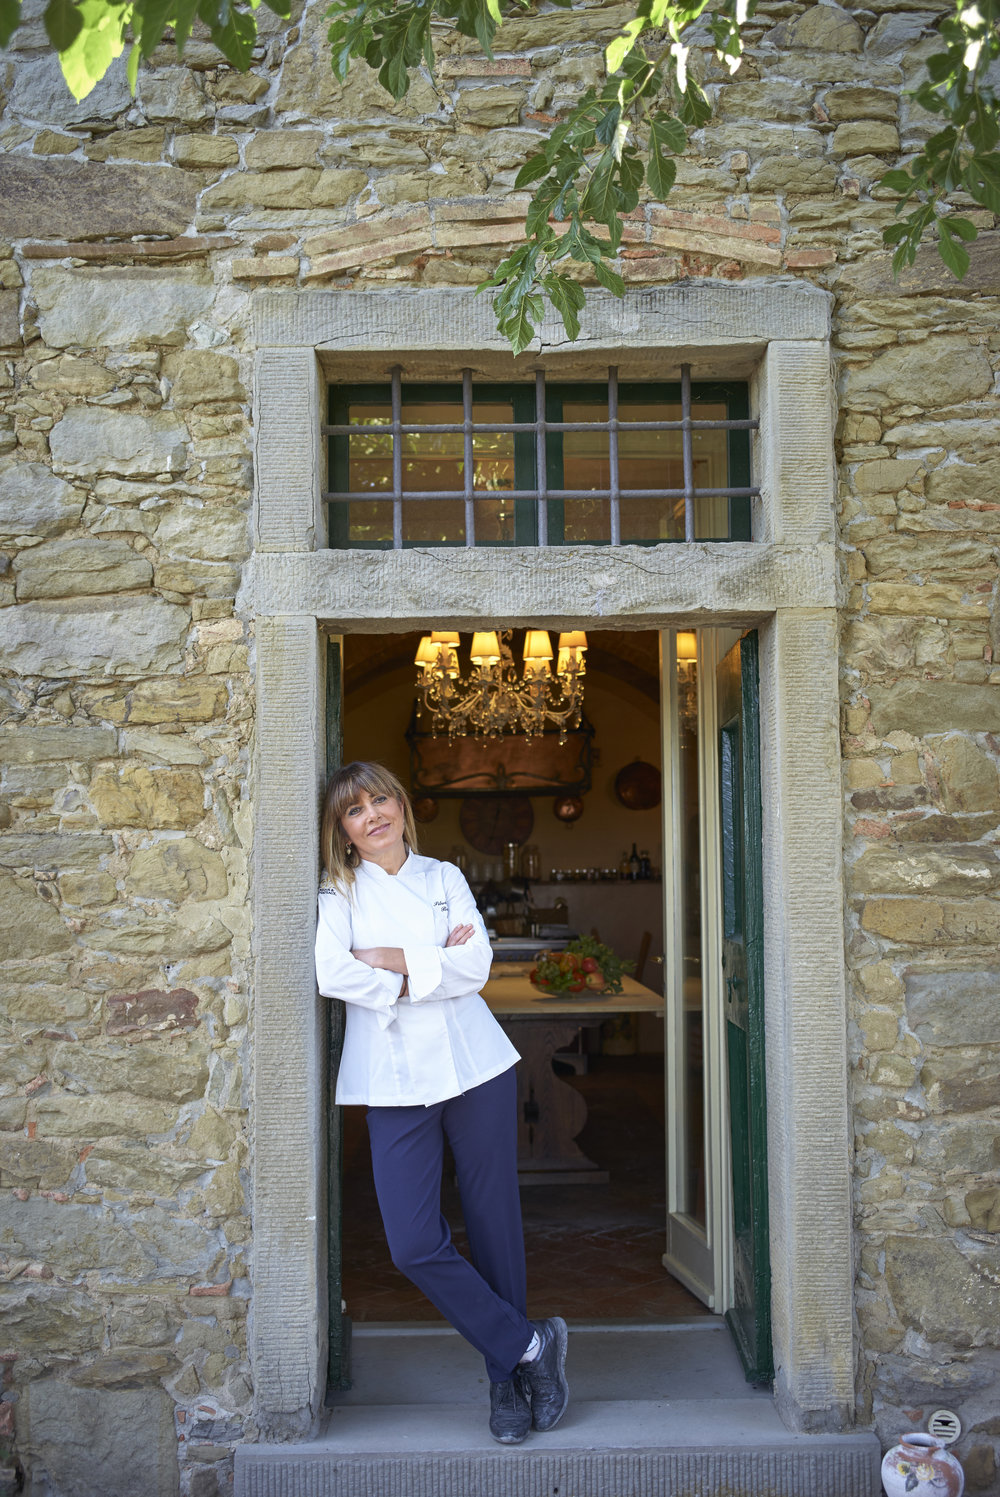 CREATE A BUSINESS MIX THAT WORKS FOR YOU - Chic Retreats is not just another OTA.  We offer a solution created specifically for small boutique hotels. We market the unique aspects of your property and the details of the experience you create.  We enable you to reach the wider online travel market, so you have a more robust business mix.  We are confident that you will be pleased with your return on investment.  So much so, we guarantee to give your second year free,  should your ROI not be achieved.